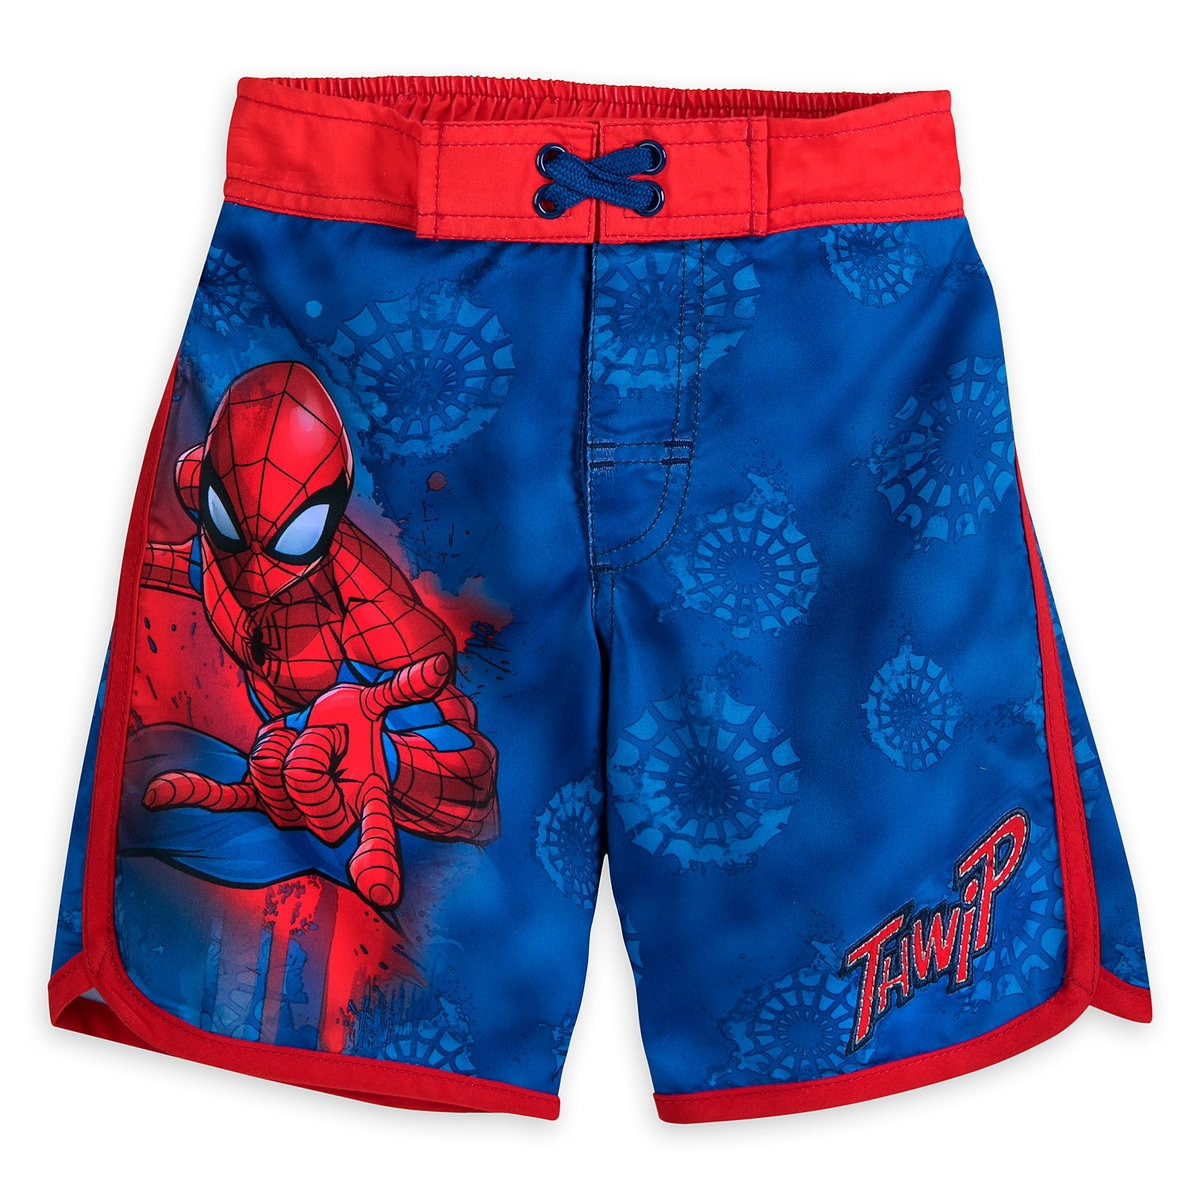 b55a6500b12bb Product Image of Spider-Man Swim Trunks for Boys # 1